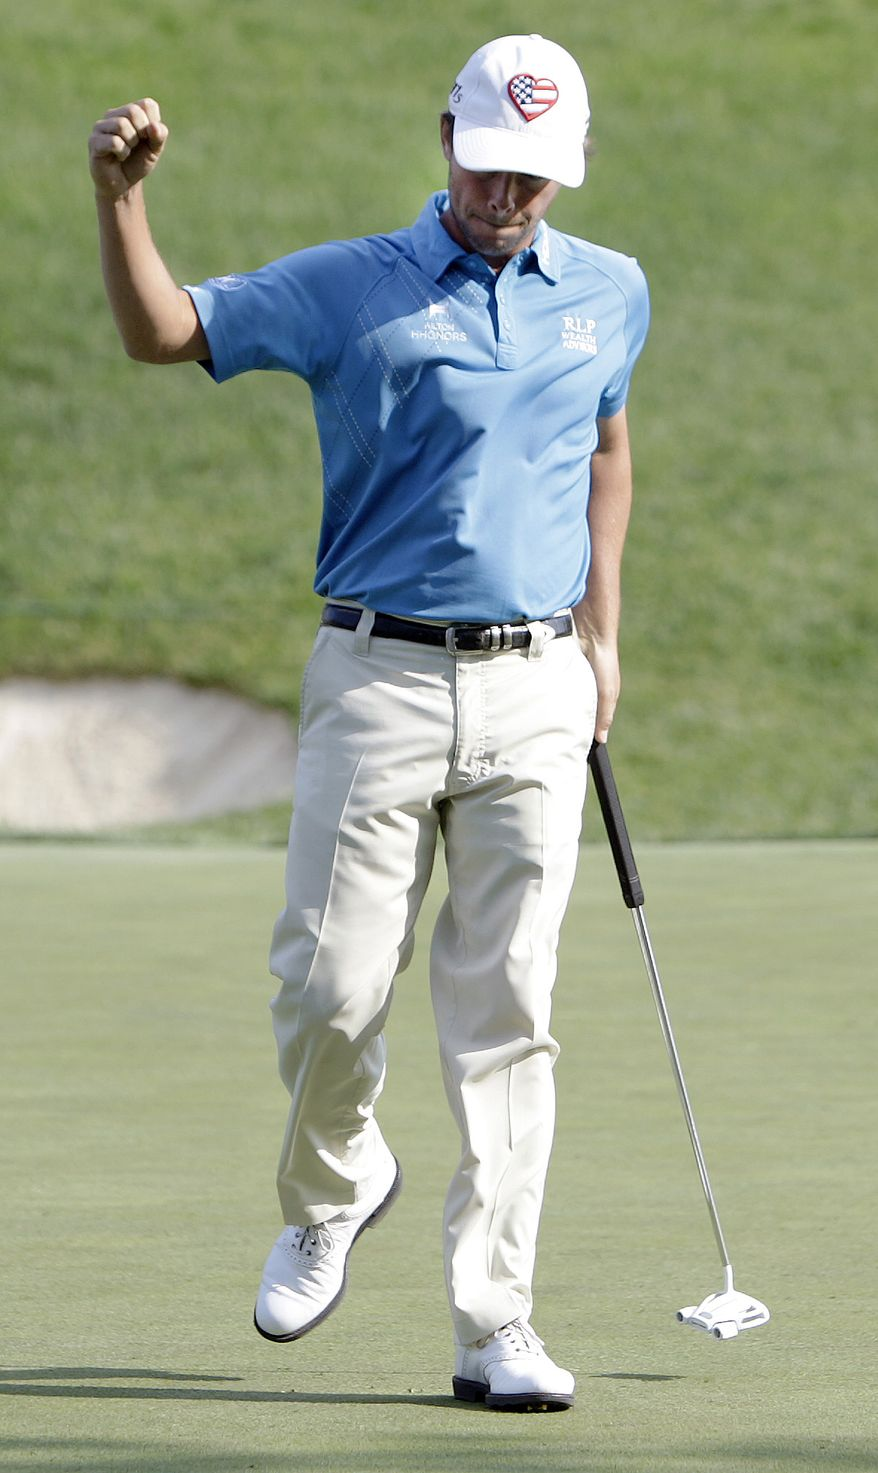 Spencer Levin reacts to making a putt on the 17th hole during the third round of the Memorial tournament Saturday, June 2, 2012, in Dublin, Ohio. (AP Photo/Jay LaPrete)